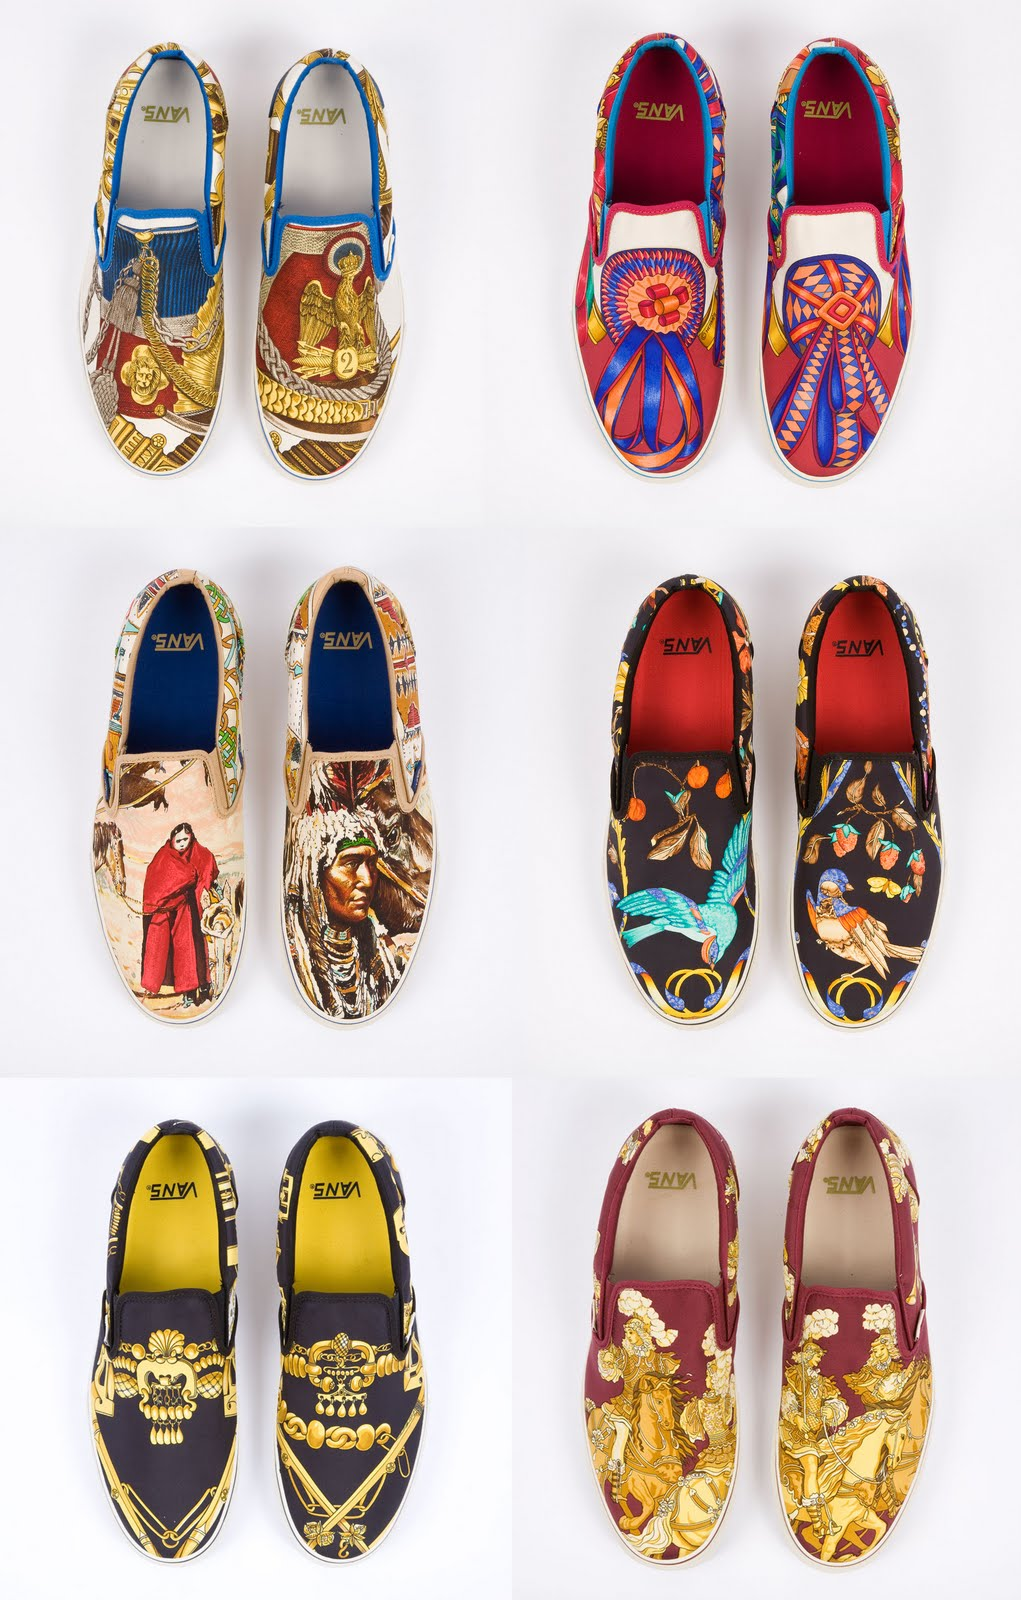 Got My Own Style Custom VANS made with Vintage Herms Scarves Yum Vintage Hermes Scarves Vans